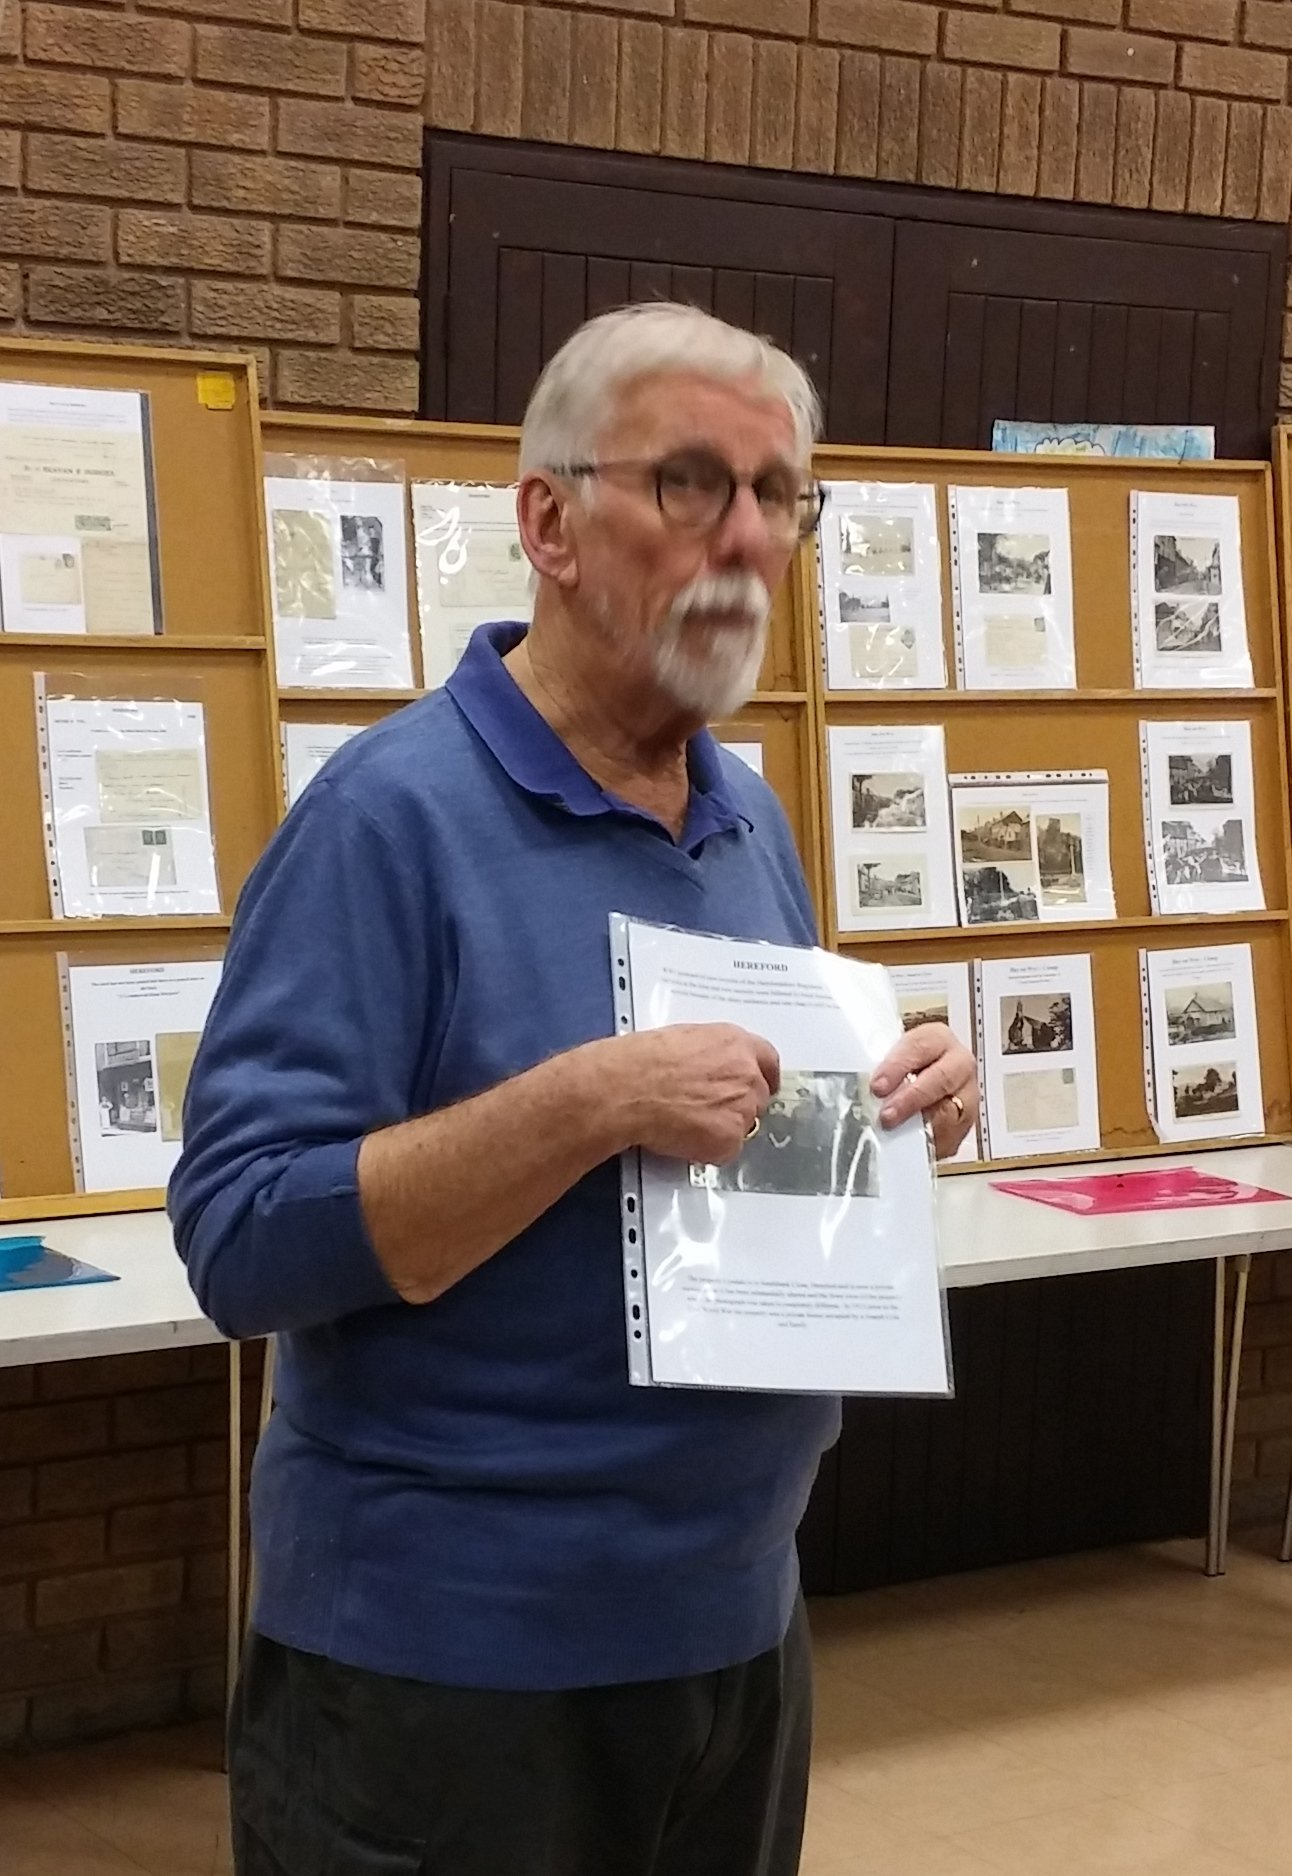 Frank Bennett gave a short display on the history of the postcard